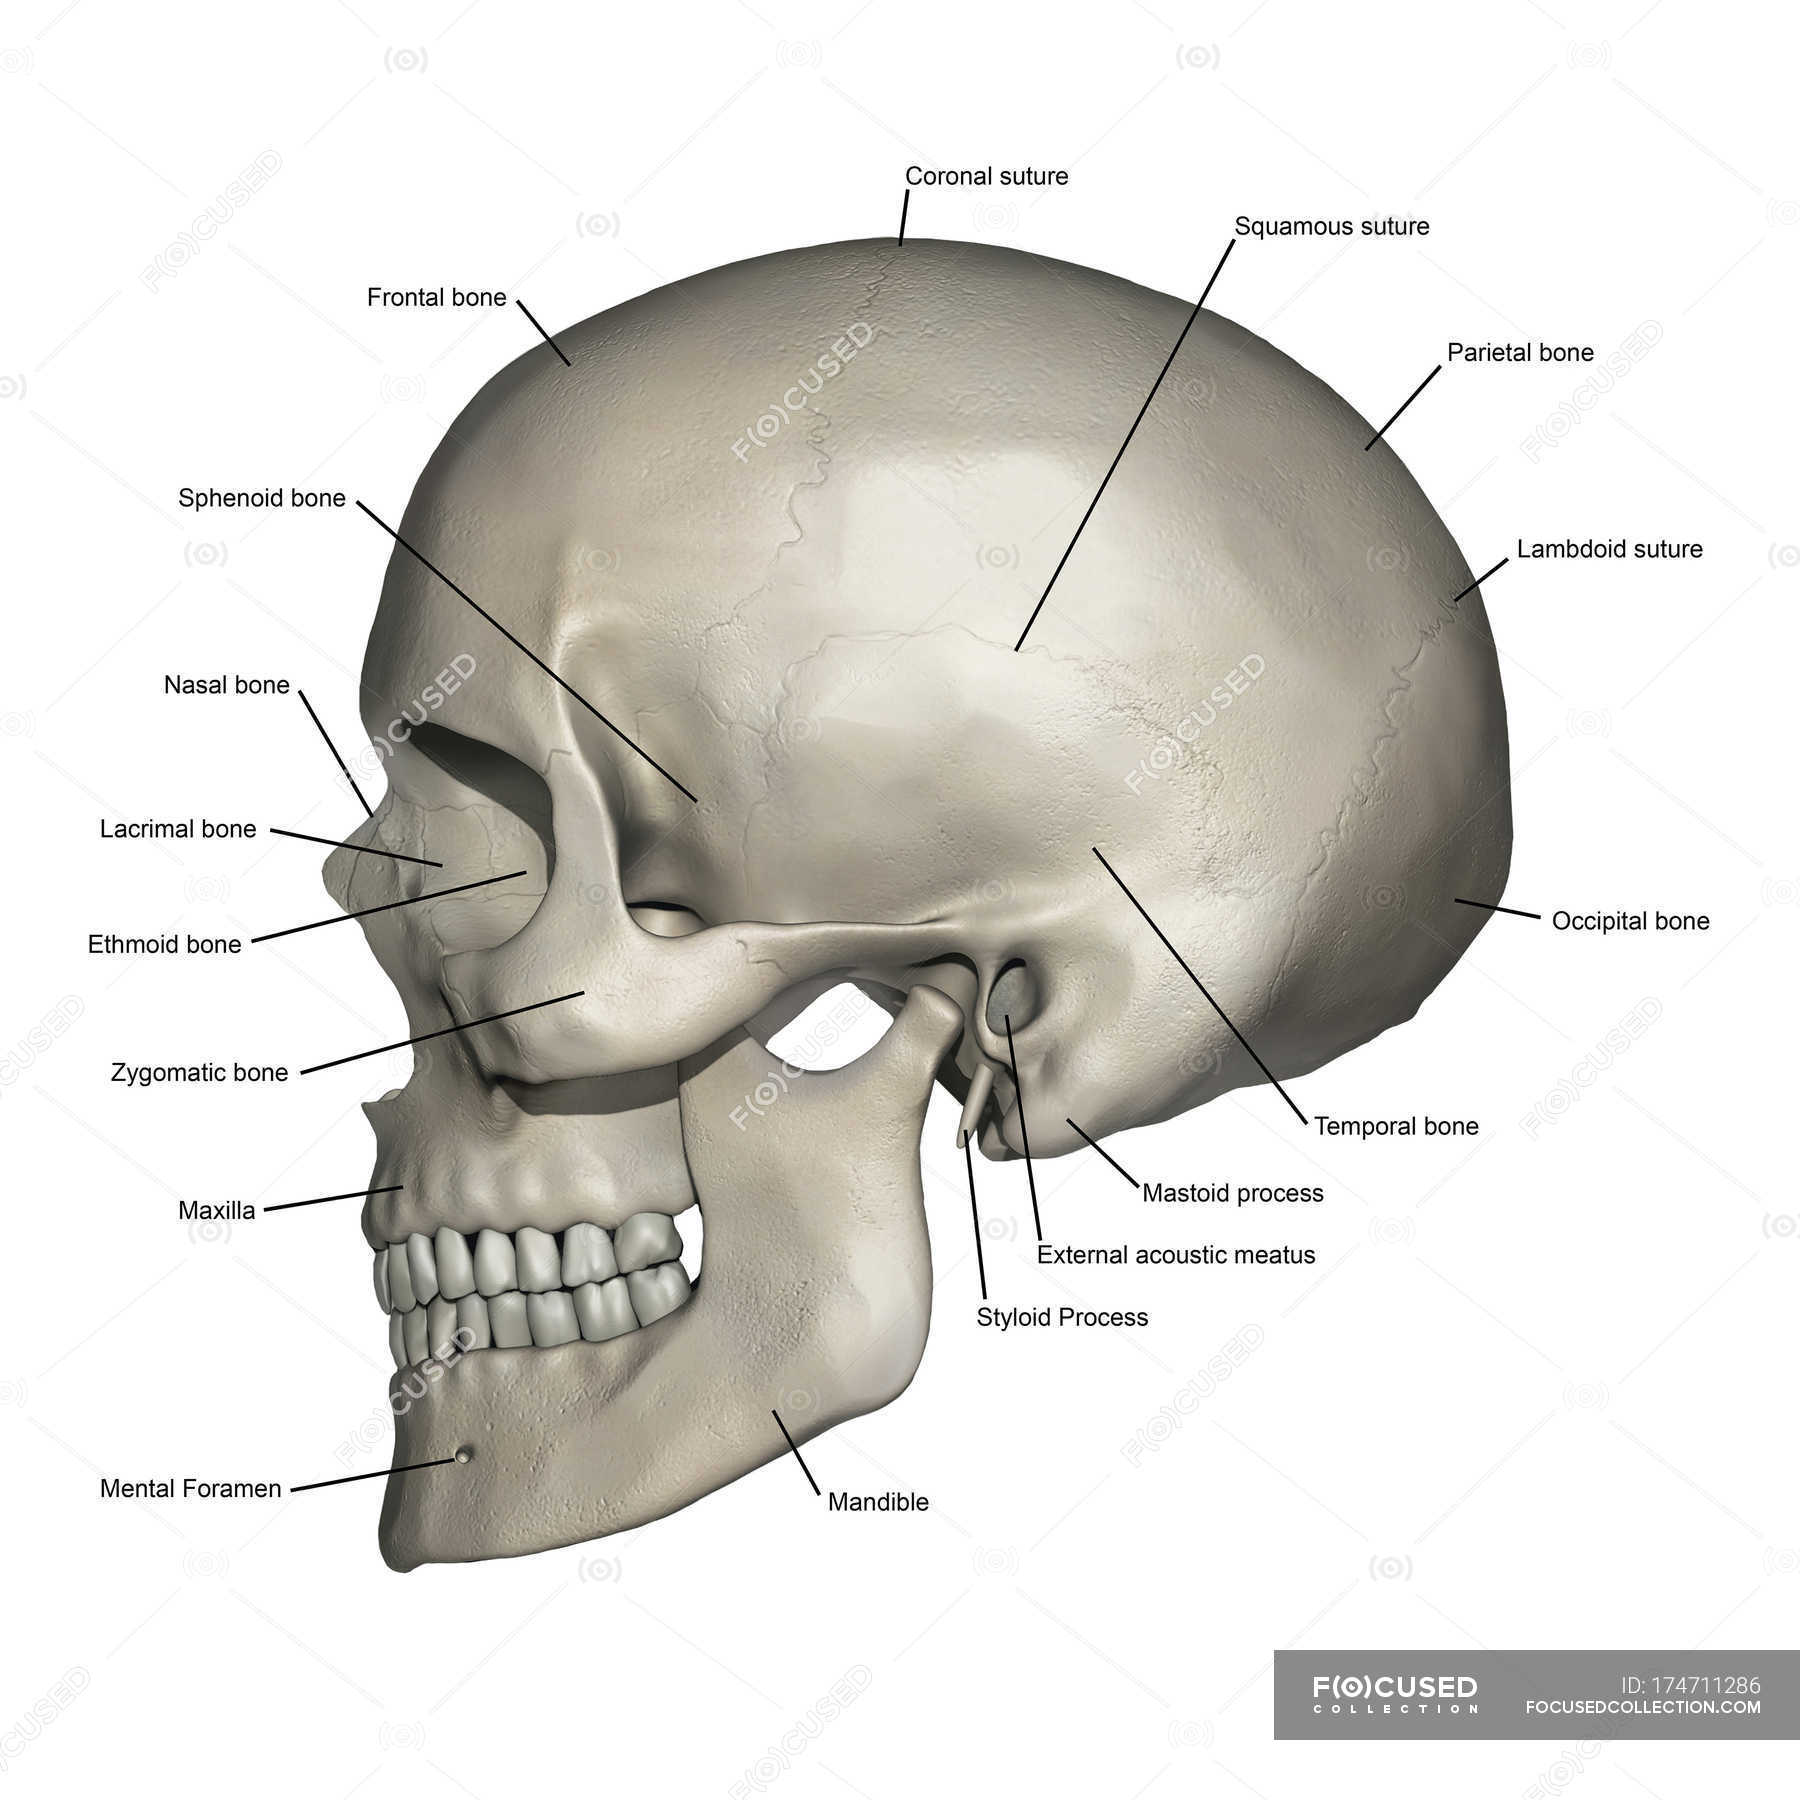 Lateral View Of Human Skull Anatomy With Annotations